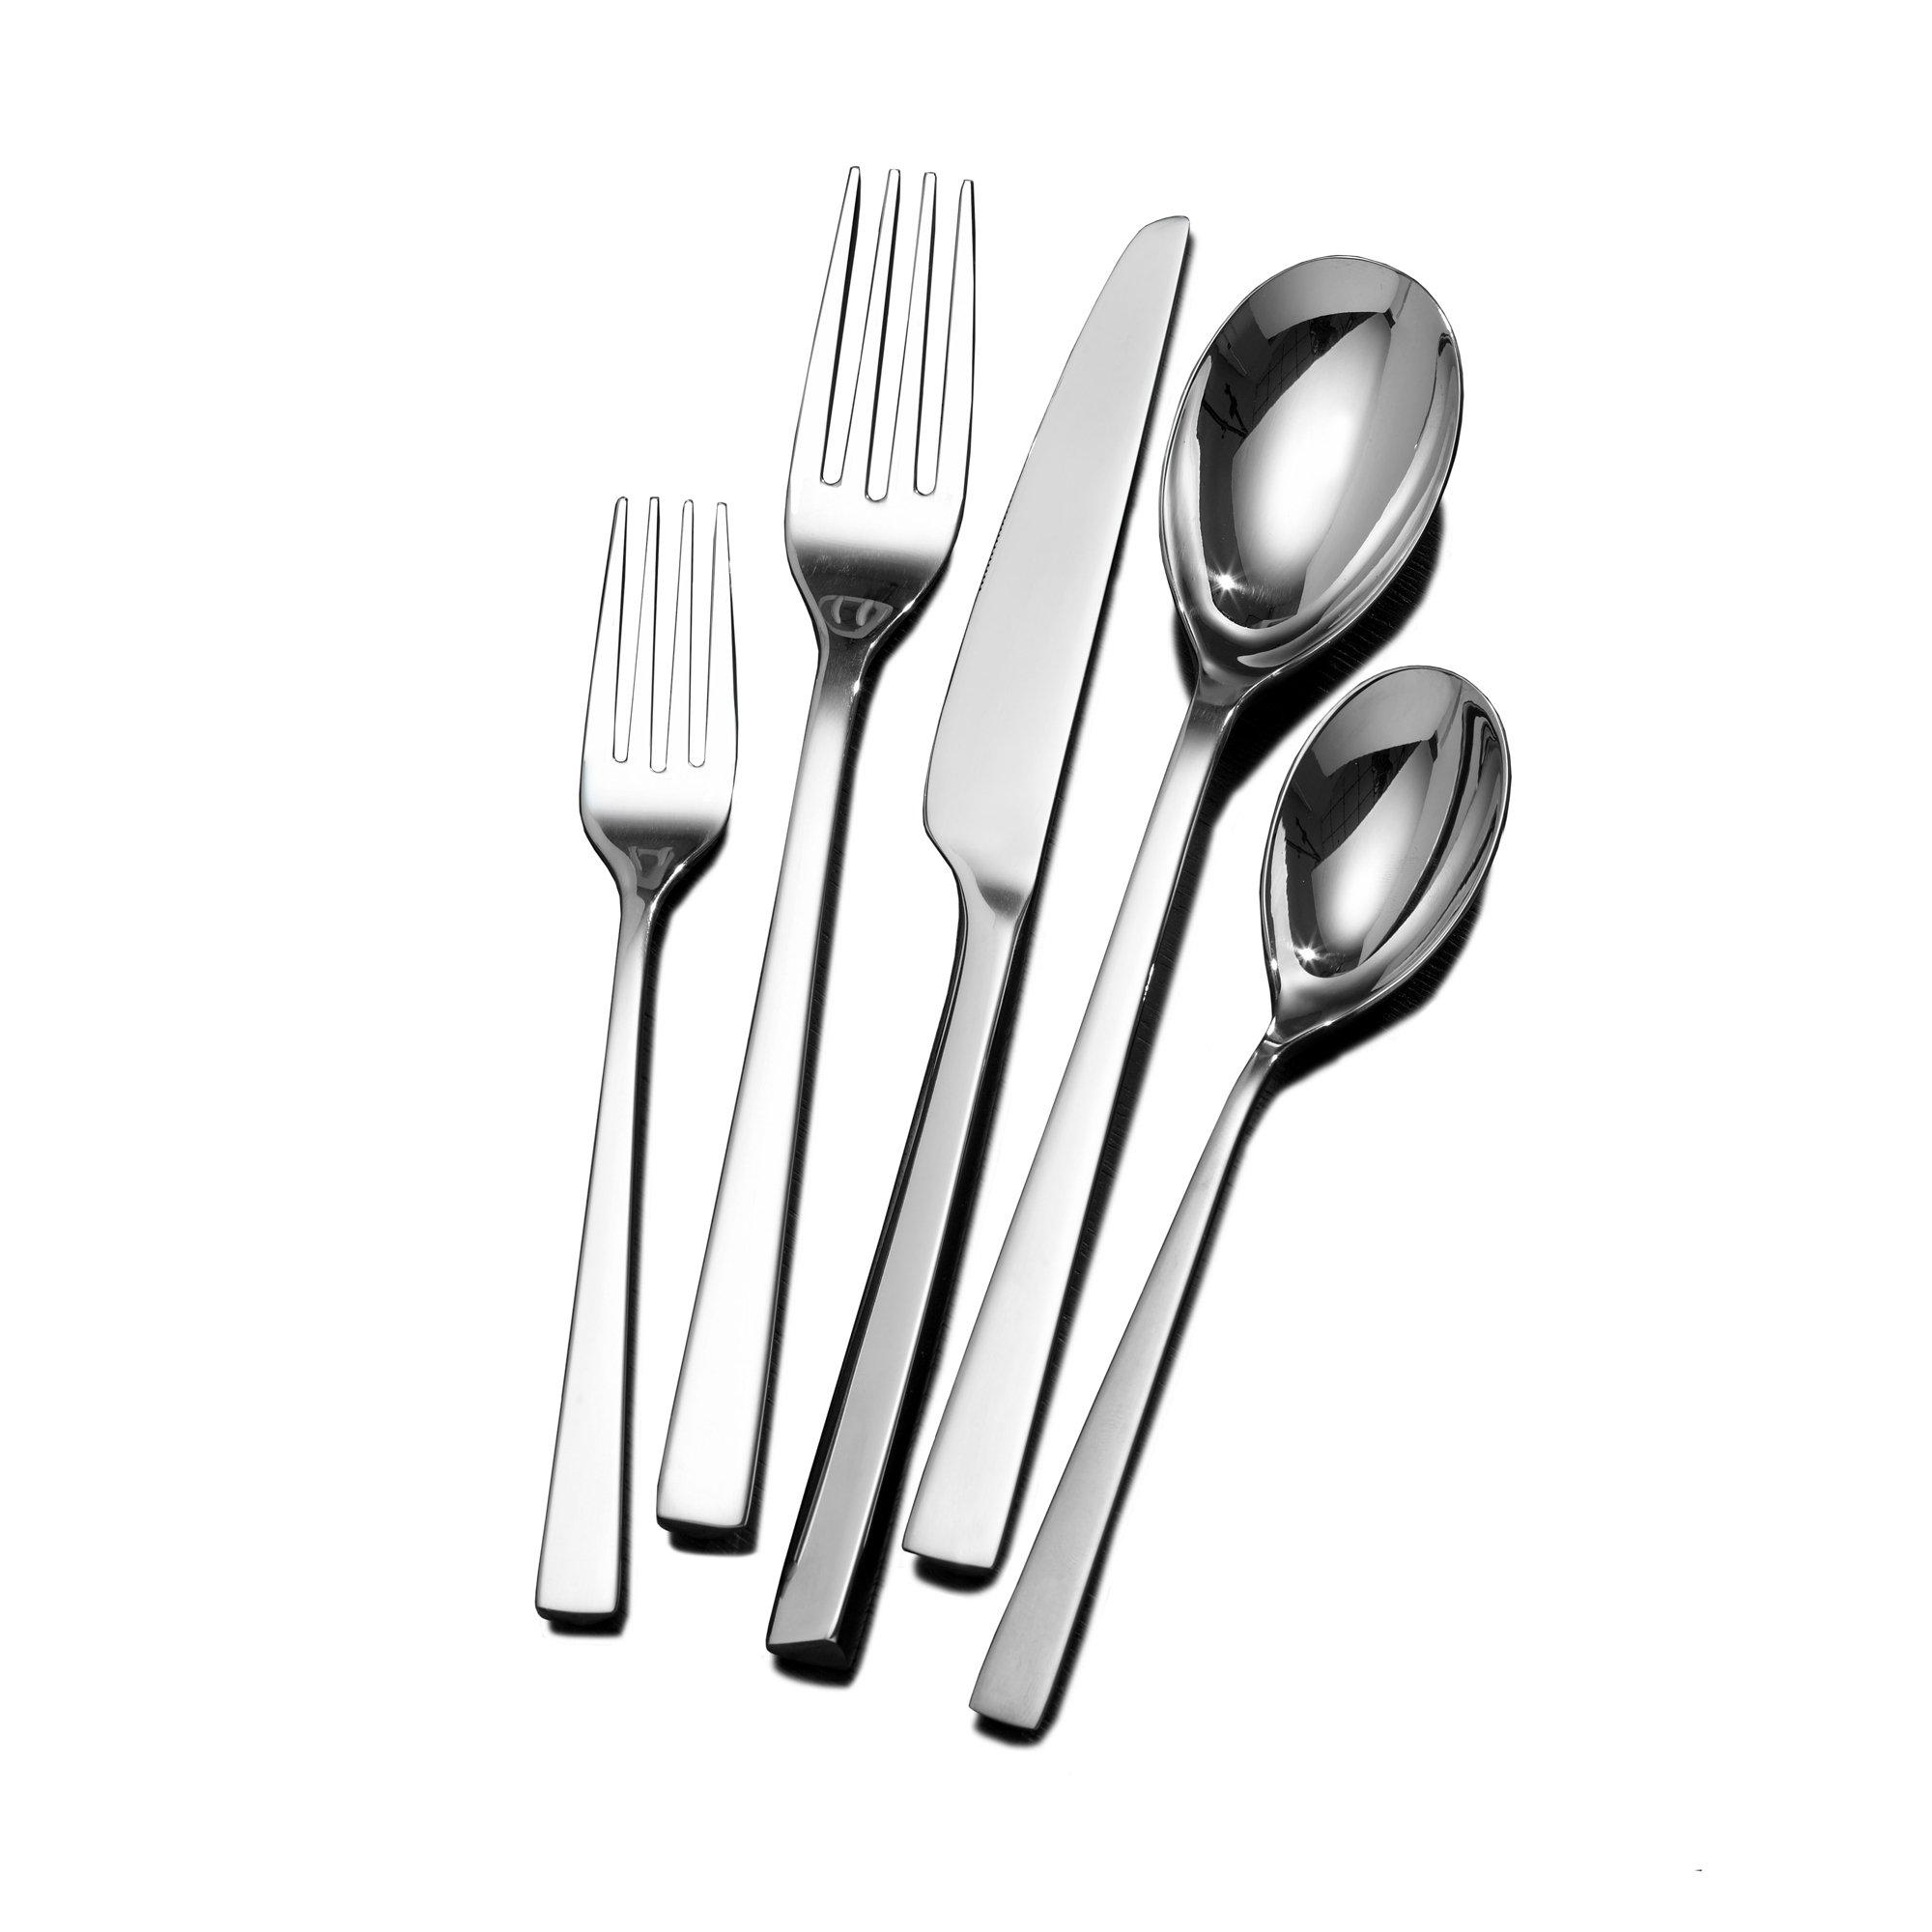 Towle Living Luxor 42-Piece Place Setting, Service for 8 by Towle Living